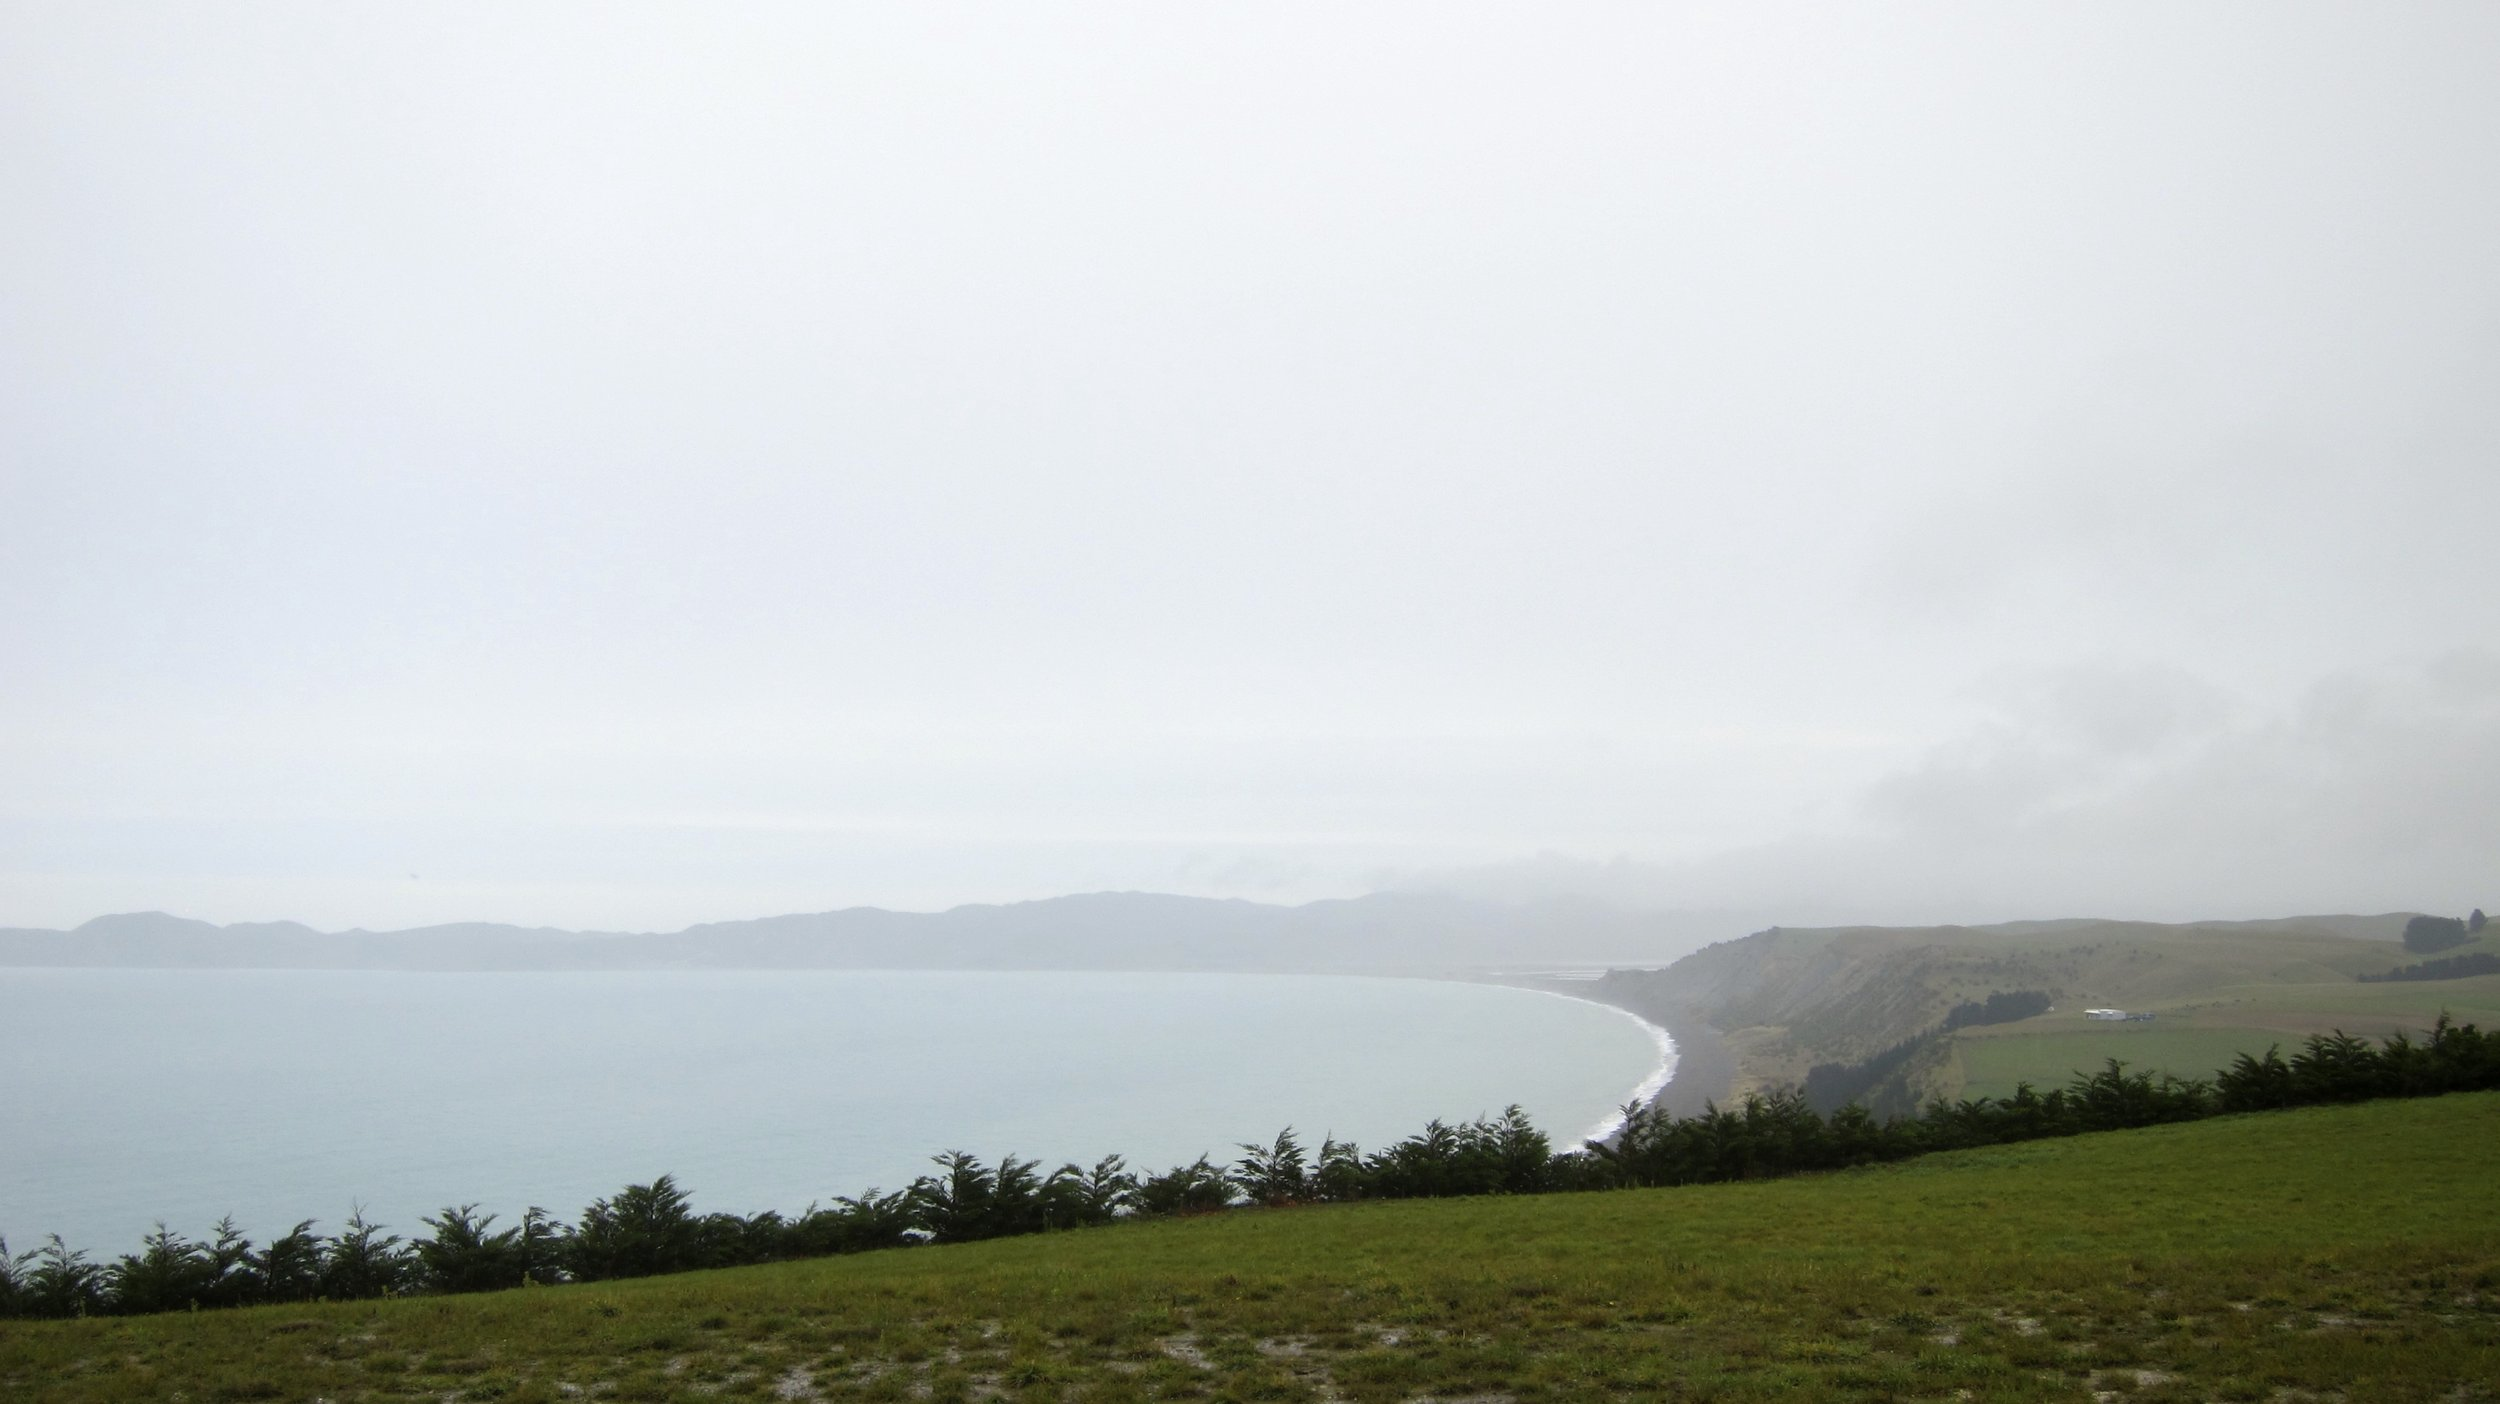 Yealands vineyards, as far as the eye can see (even on a cloudy day).